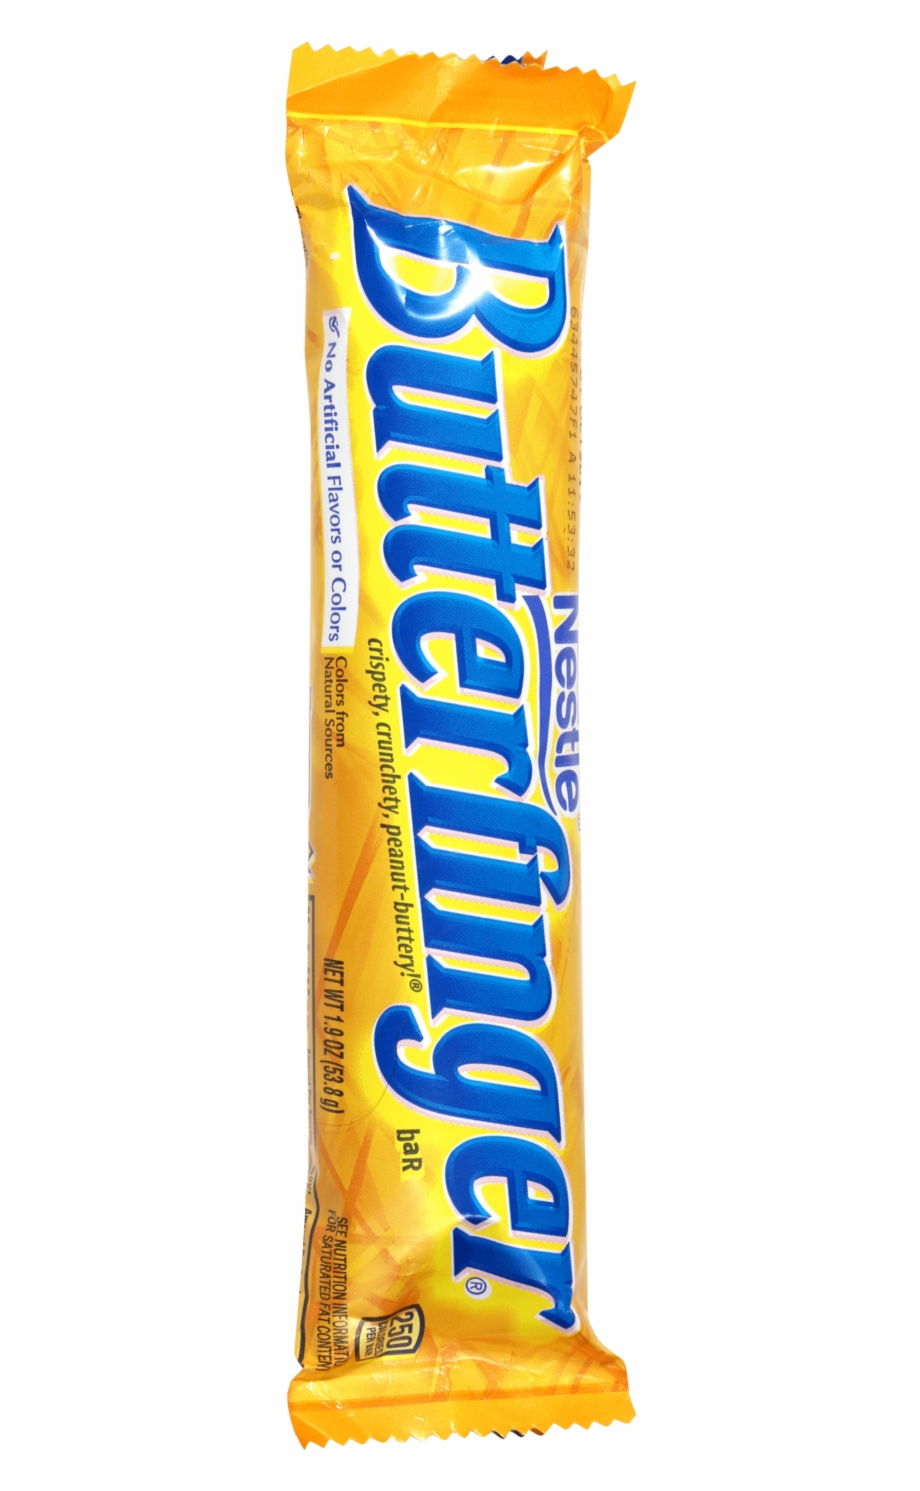 Butterfinger clipart clipart royalty free stock Butterfinger - Free PNG Images & Clipart Download #2688281 - Sccpre.Cat clipart royalty free stock